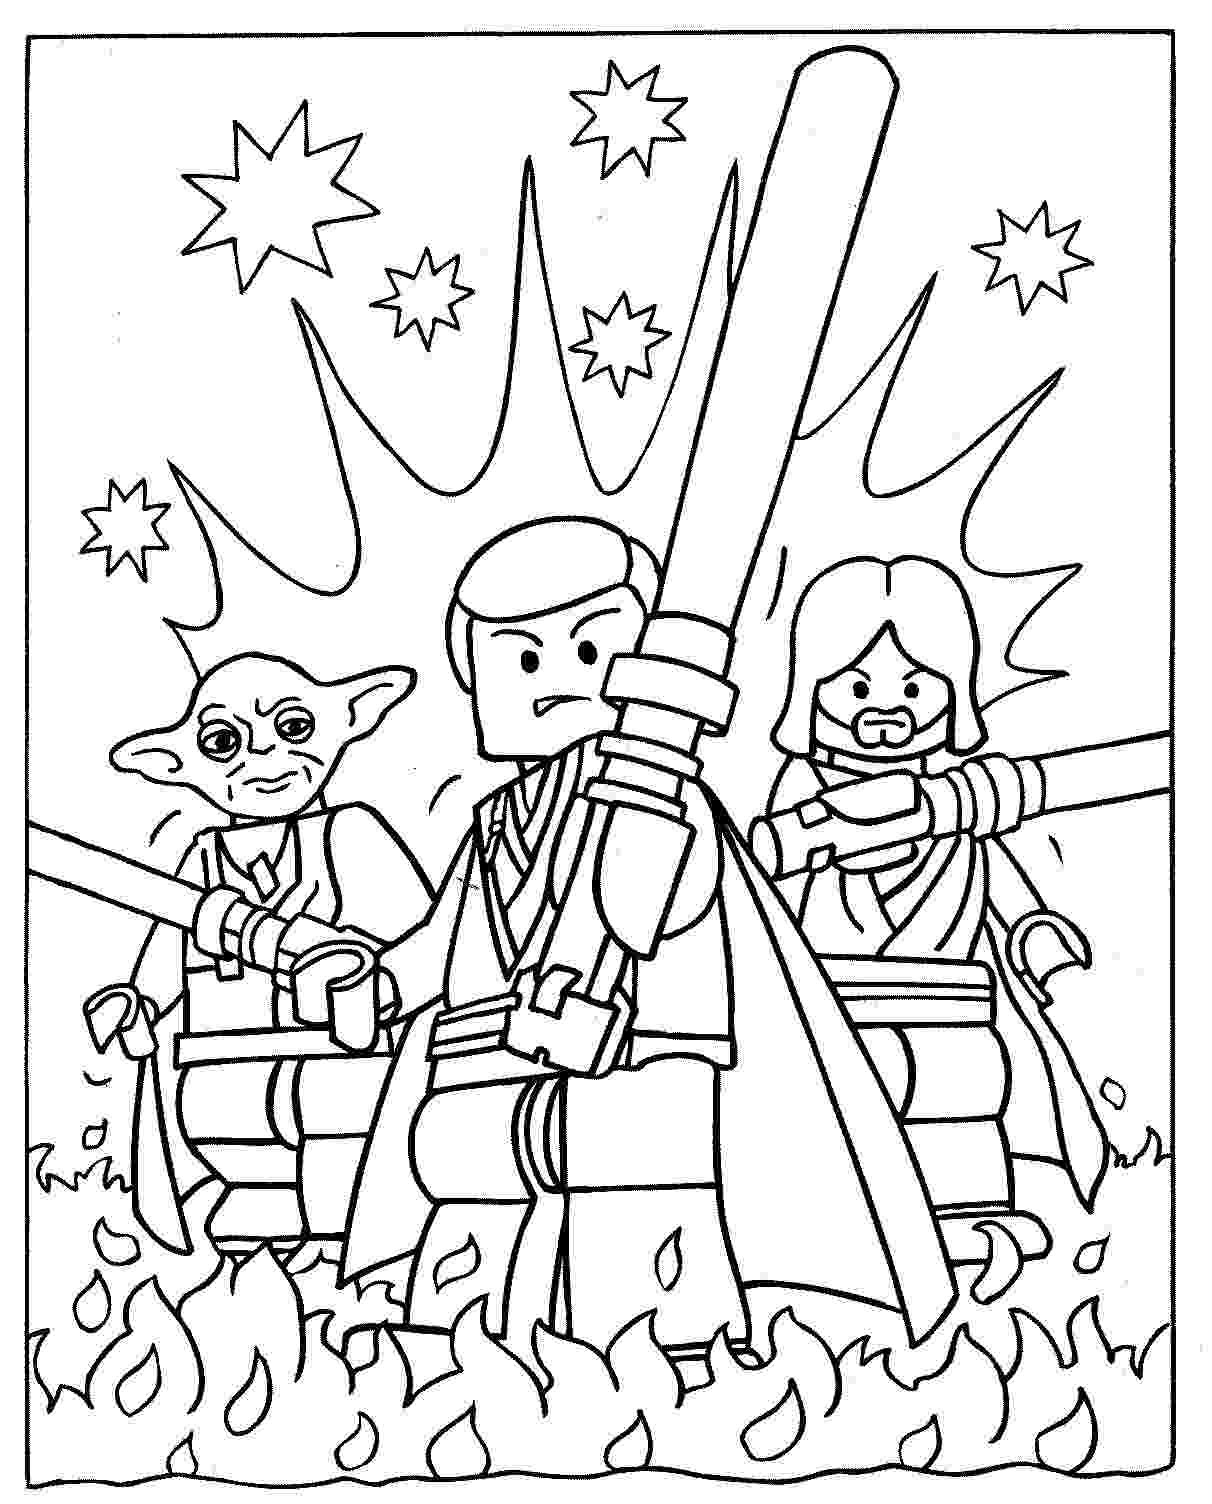 star wars printables star wars coloring pages 2018 dr odd wars printables star